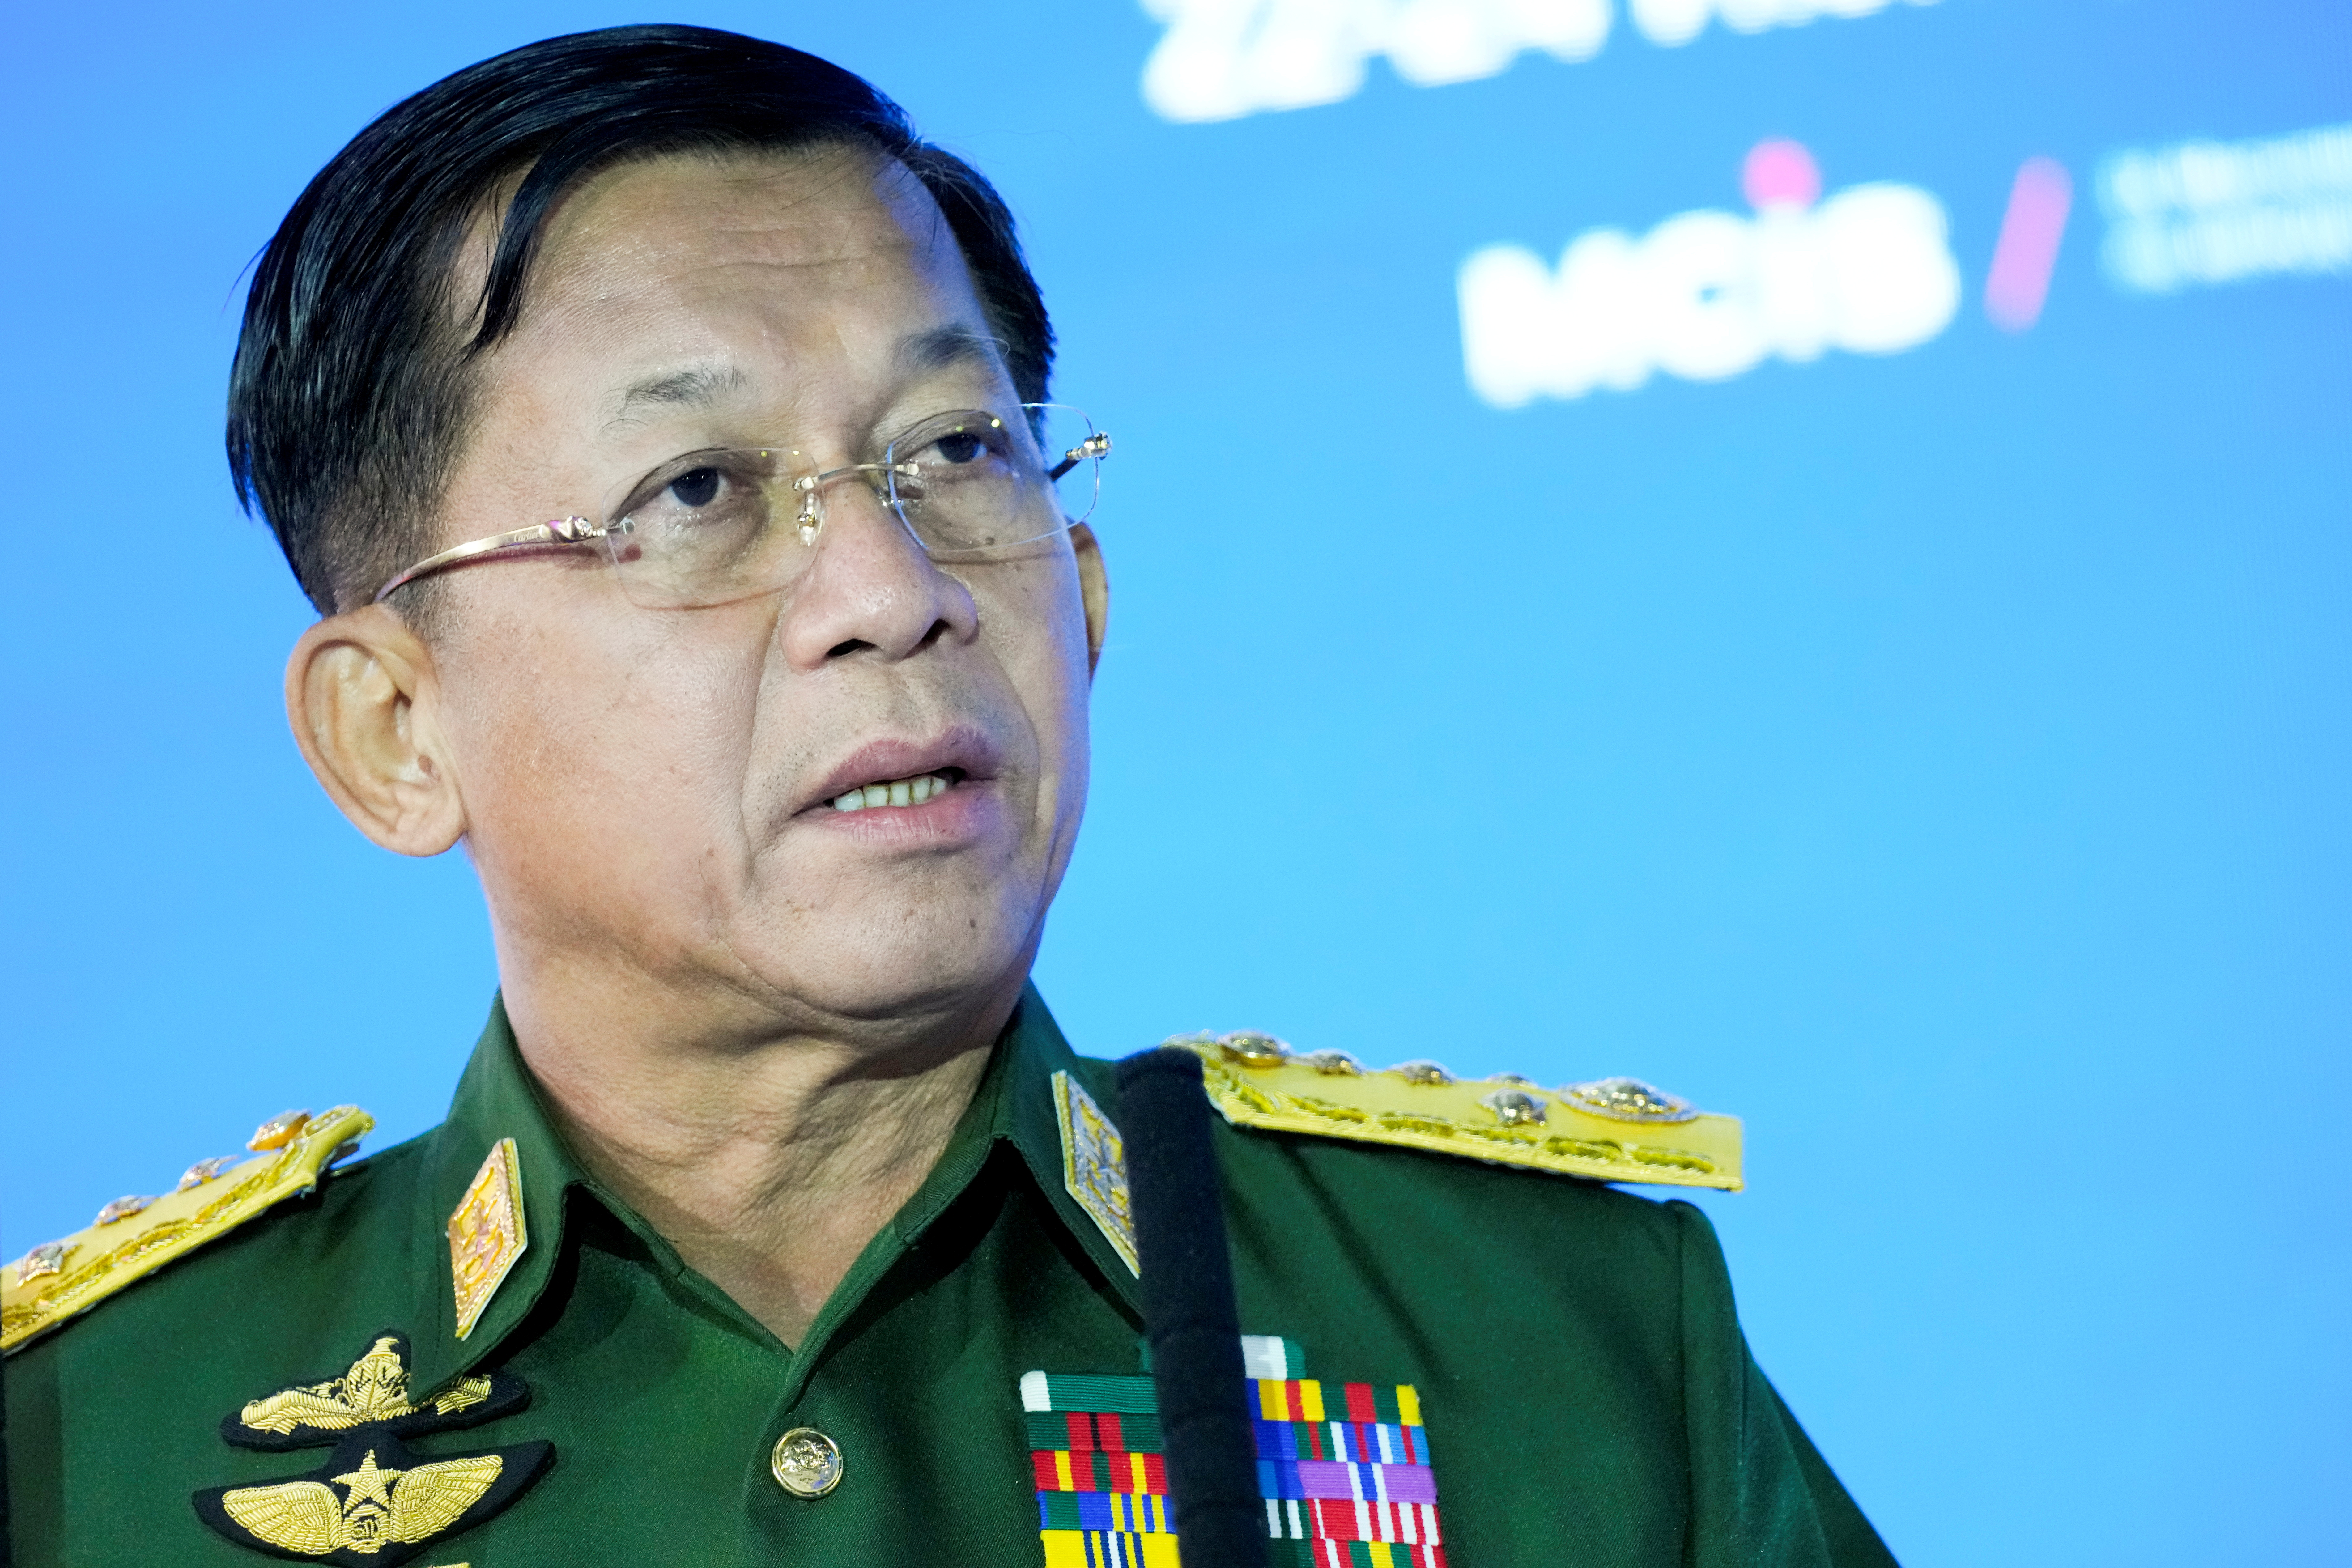 Commander-in-Chief of Myanmar's armed forces, Senior General Min Aung Hlaing delivers his speech at the IX Moscow conference on international security in Moscow, Russia June 23, 2021. Alexander Zemlianichenko/Pool via REUTERS